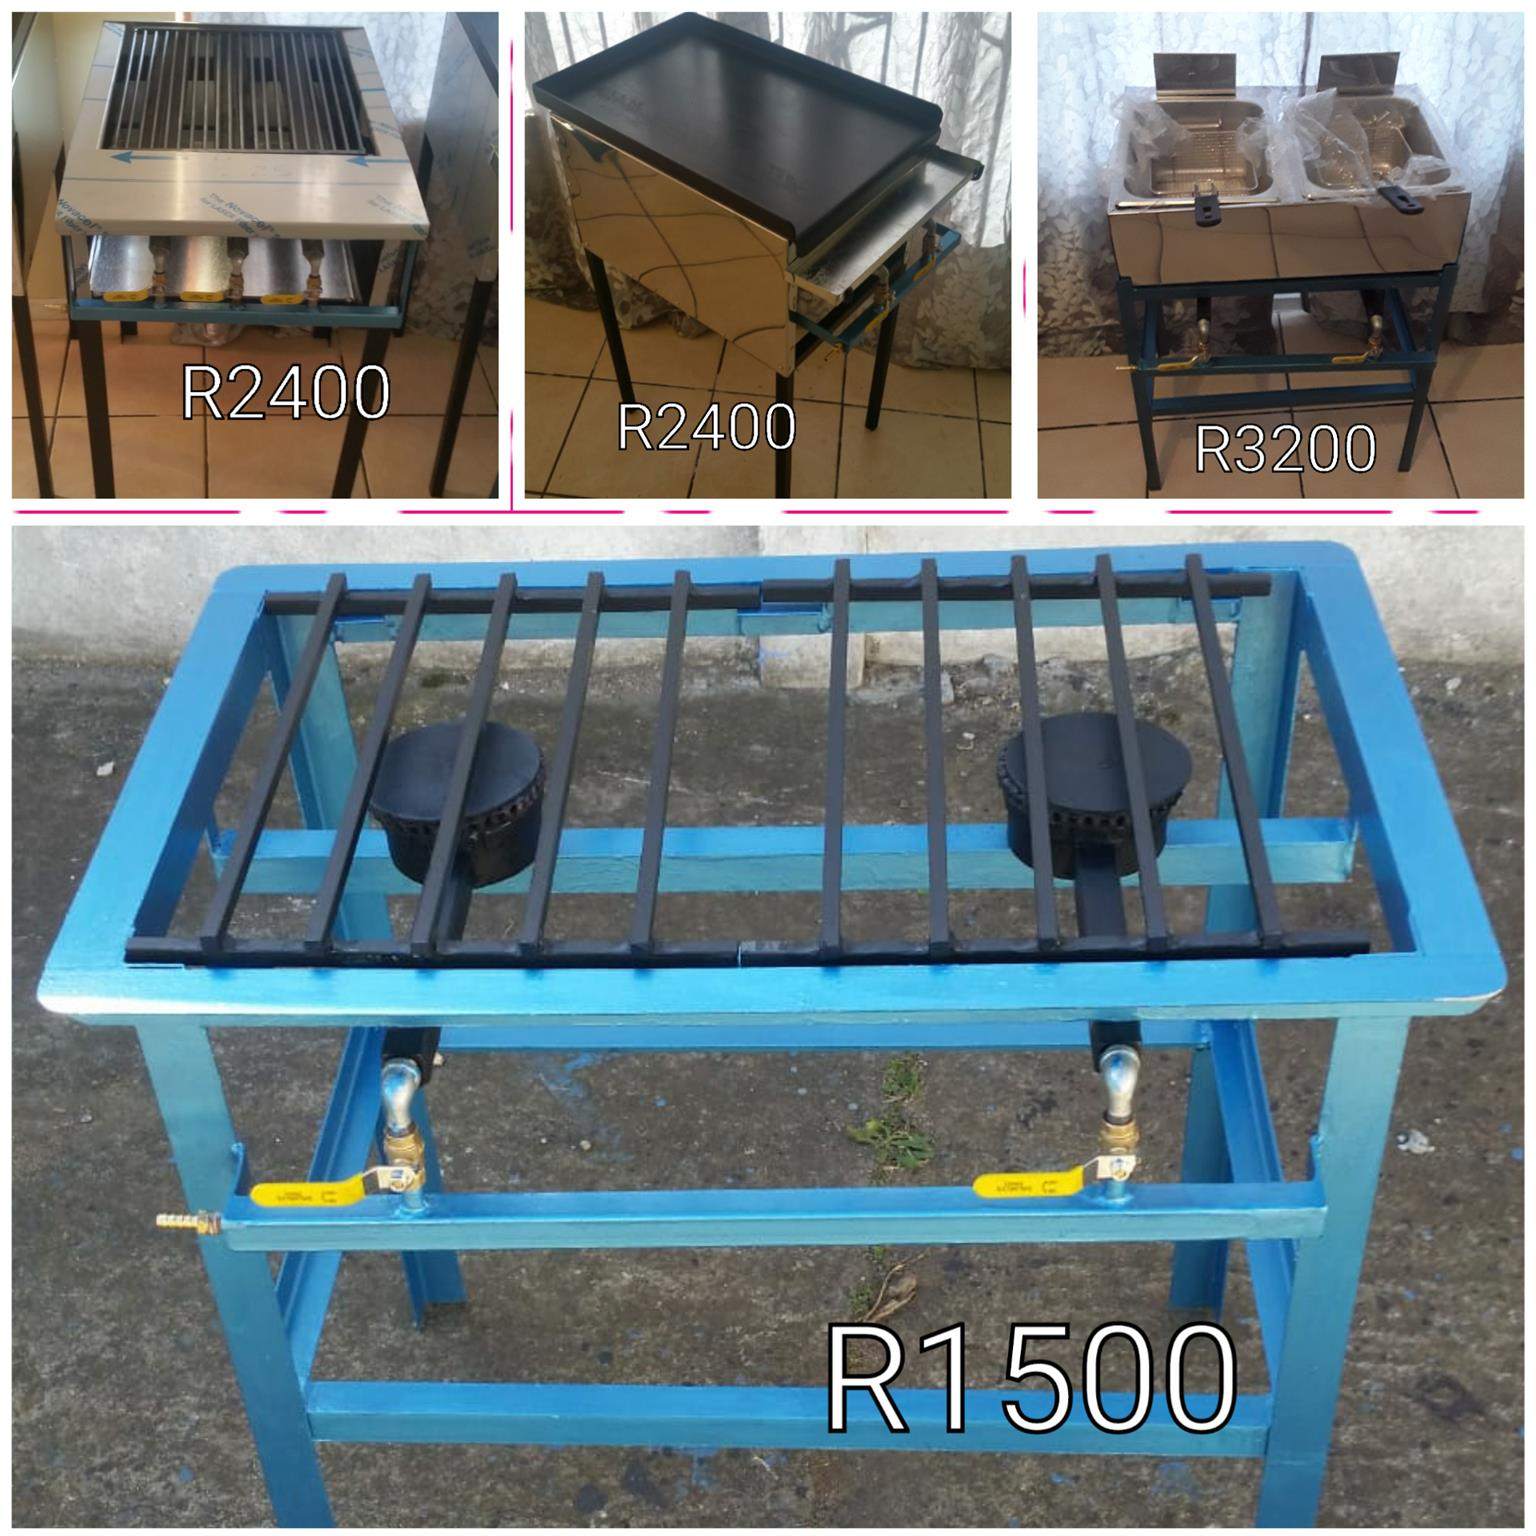 Gas Griller & other catering equipment combo